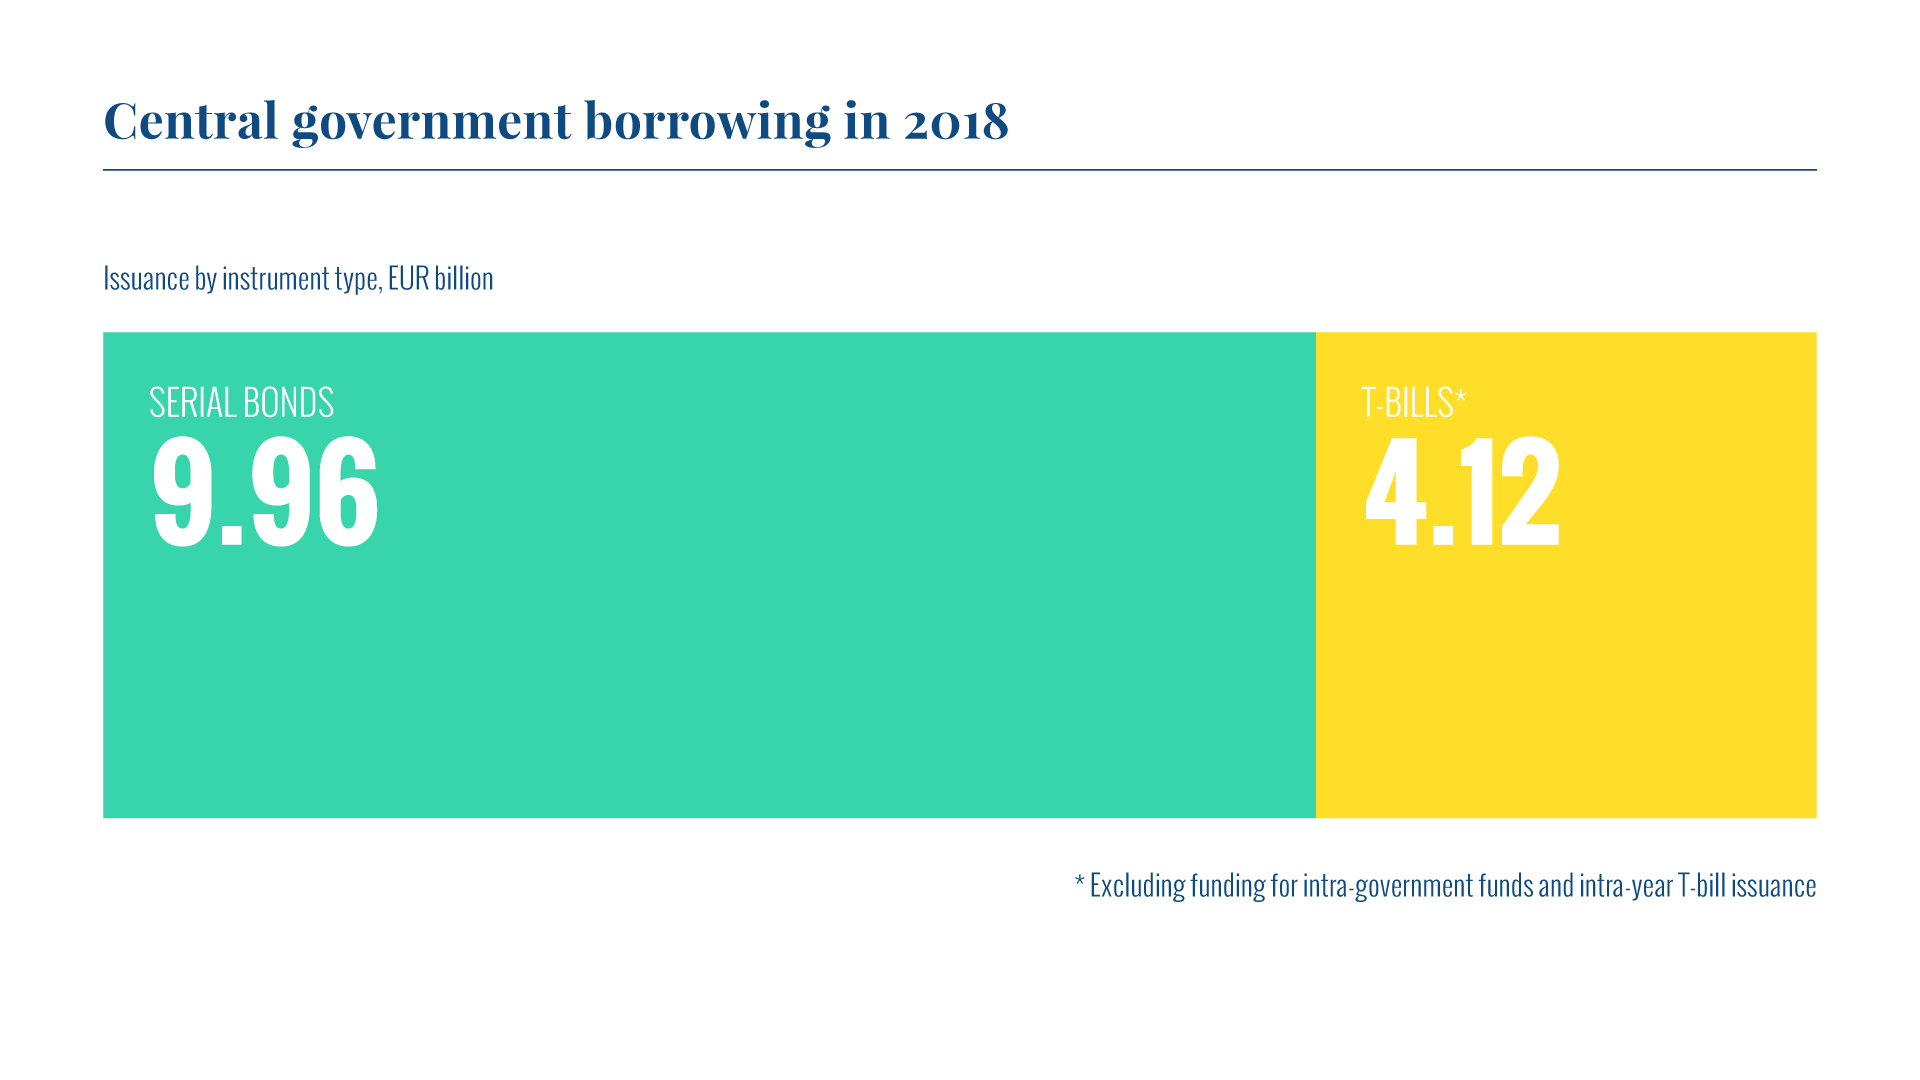 The realised gross borrowing amount in 2018 was EUR 14.1 billion. Of this amount, long-term issuance accounted for EUR 9.96 billion and short-term borrowing for EUR 4.12 billion.